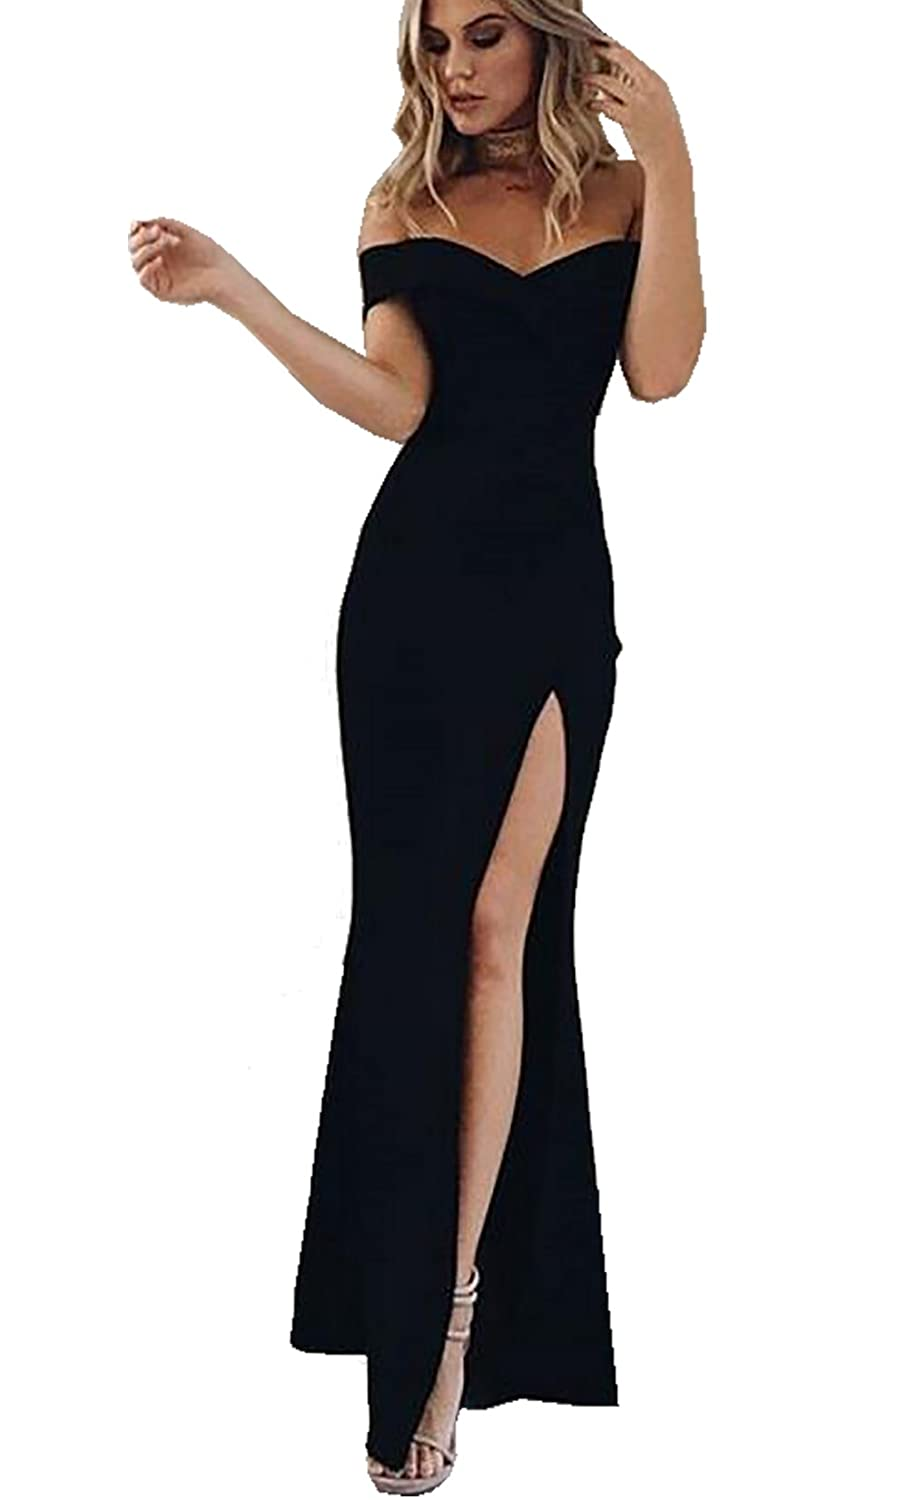 d05d3aa7d0 PRETTYGARDEN Women s 2019 Off Shoulder Side Split Slim Evening Maxi Party  Dress at Amazon Women s Clothing store